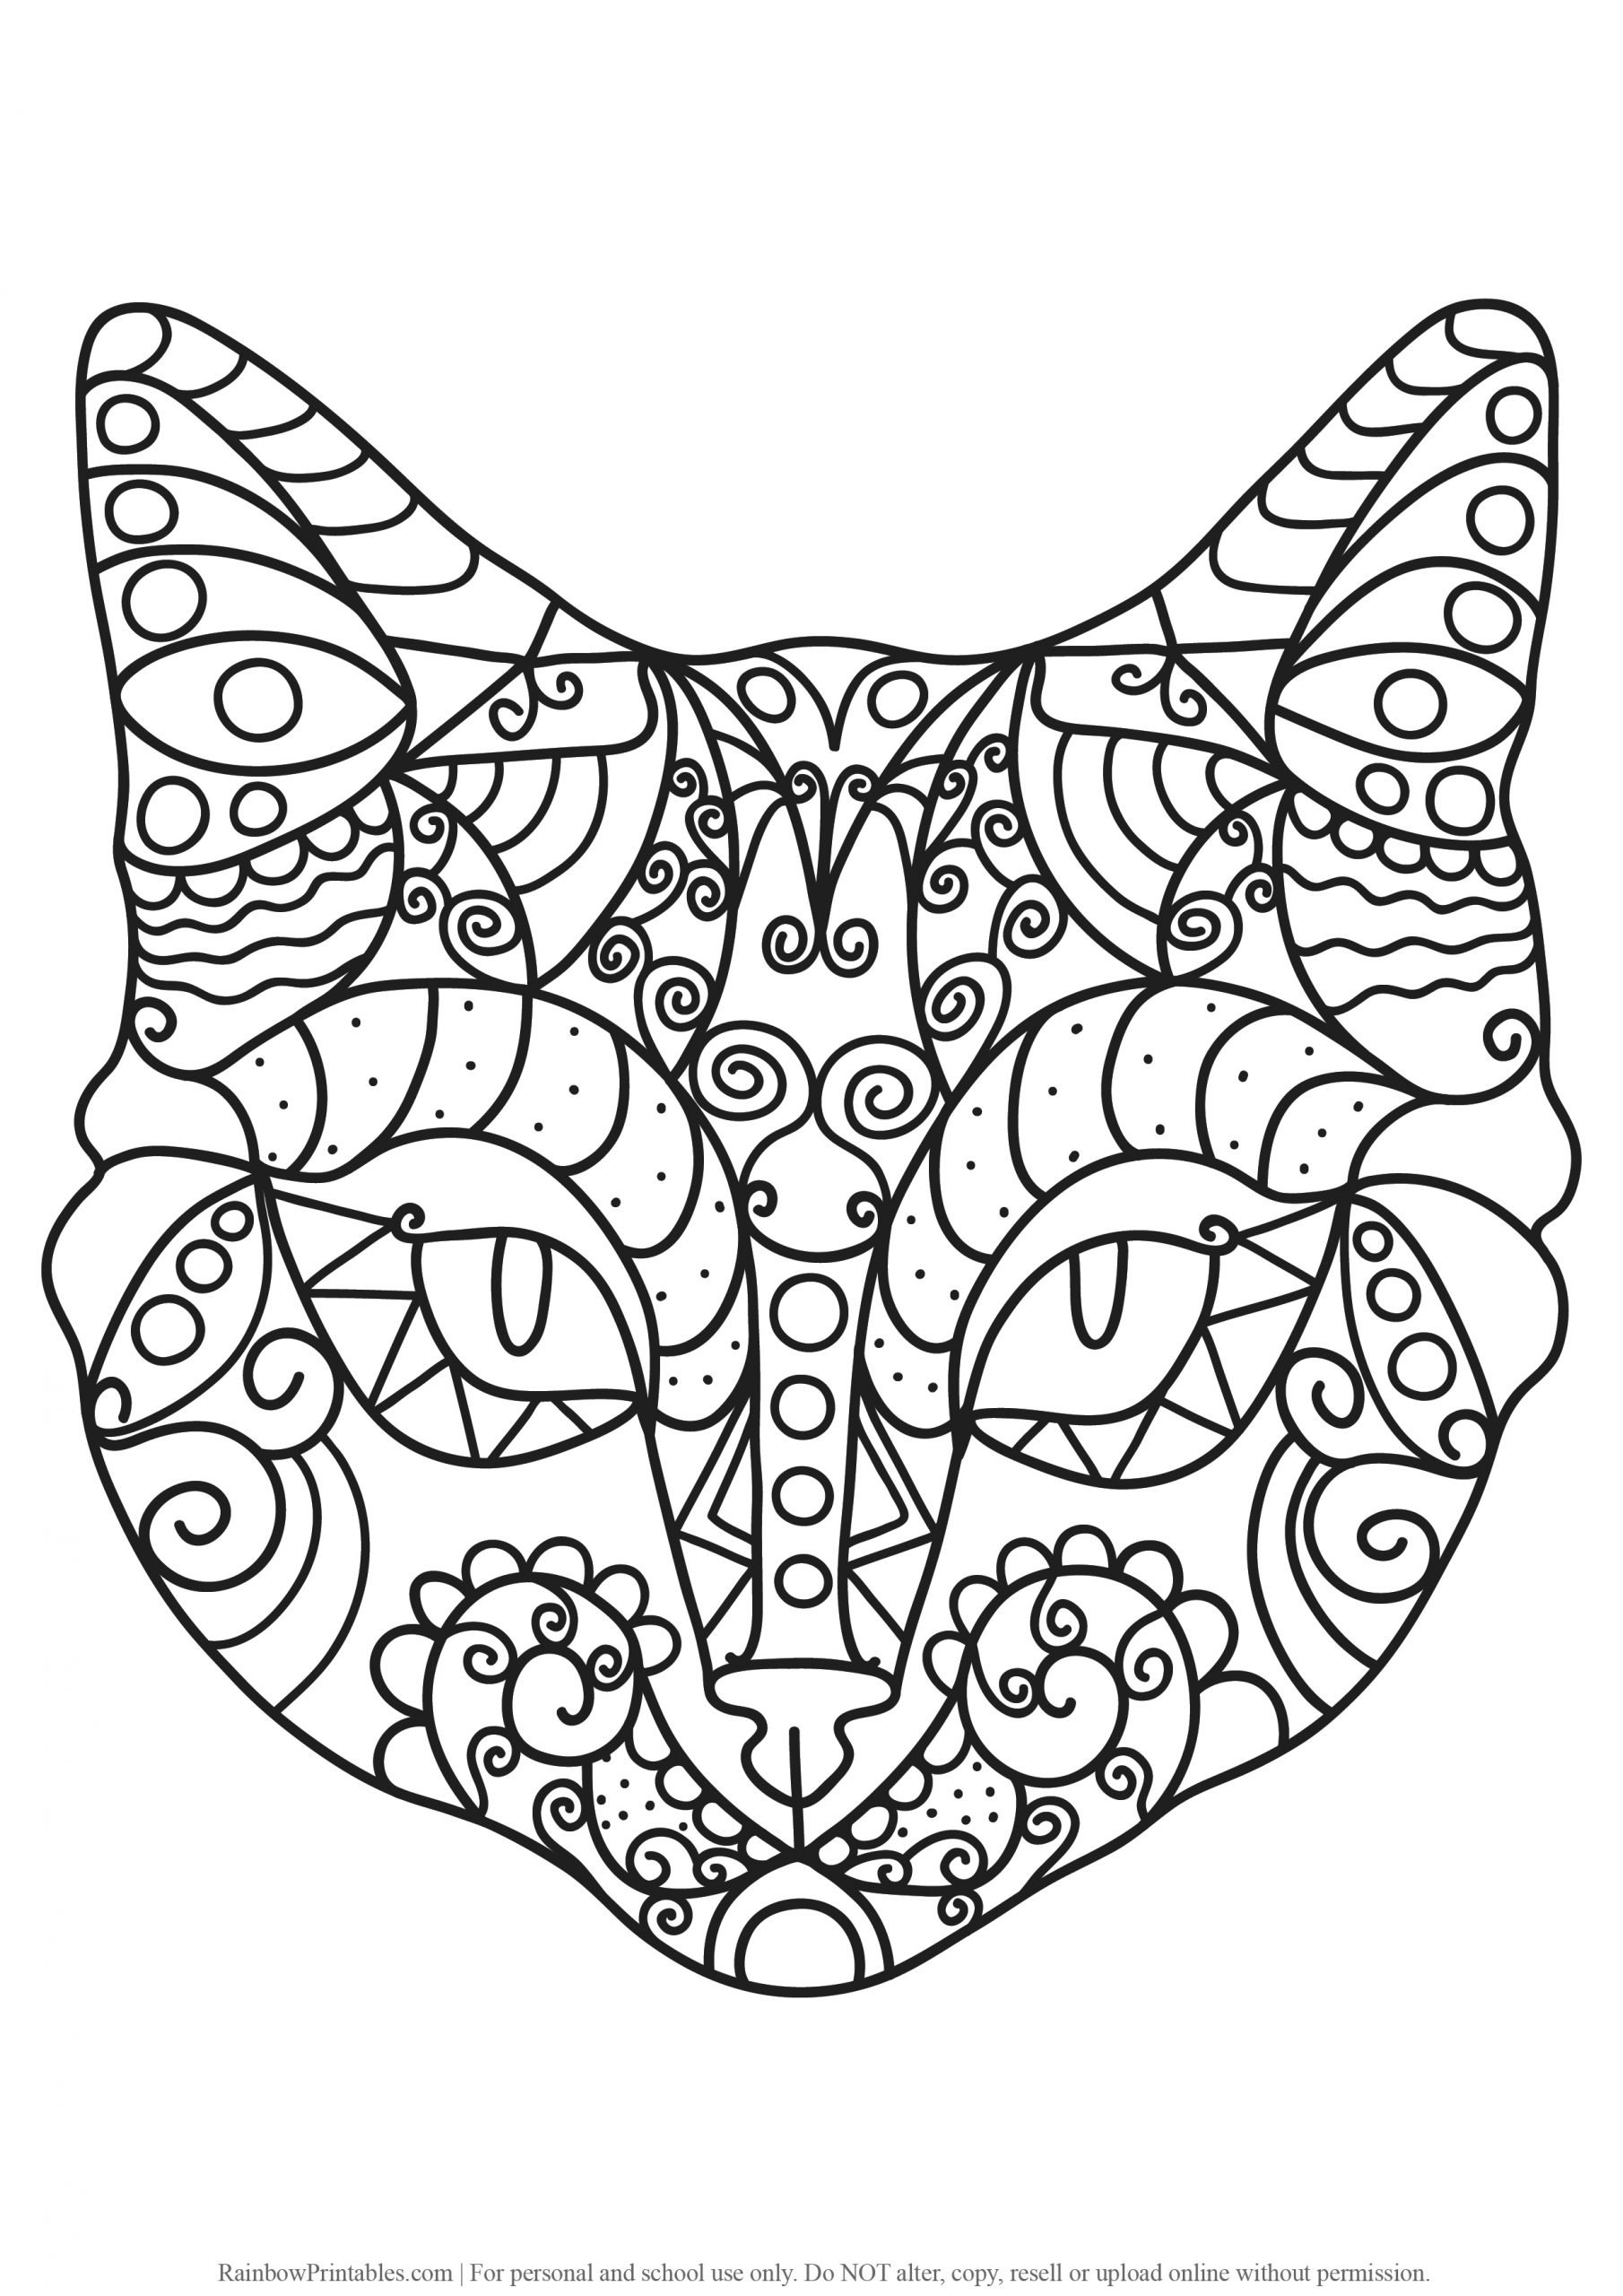 34 Free Mosaic Kitty Cat Coloring Pages For Kids Adults Anti Stress Art Activity Rainbow Printables